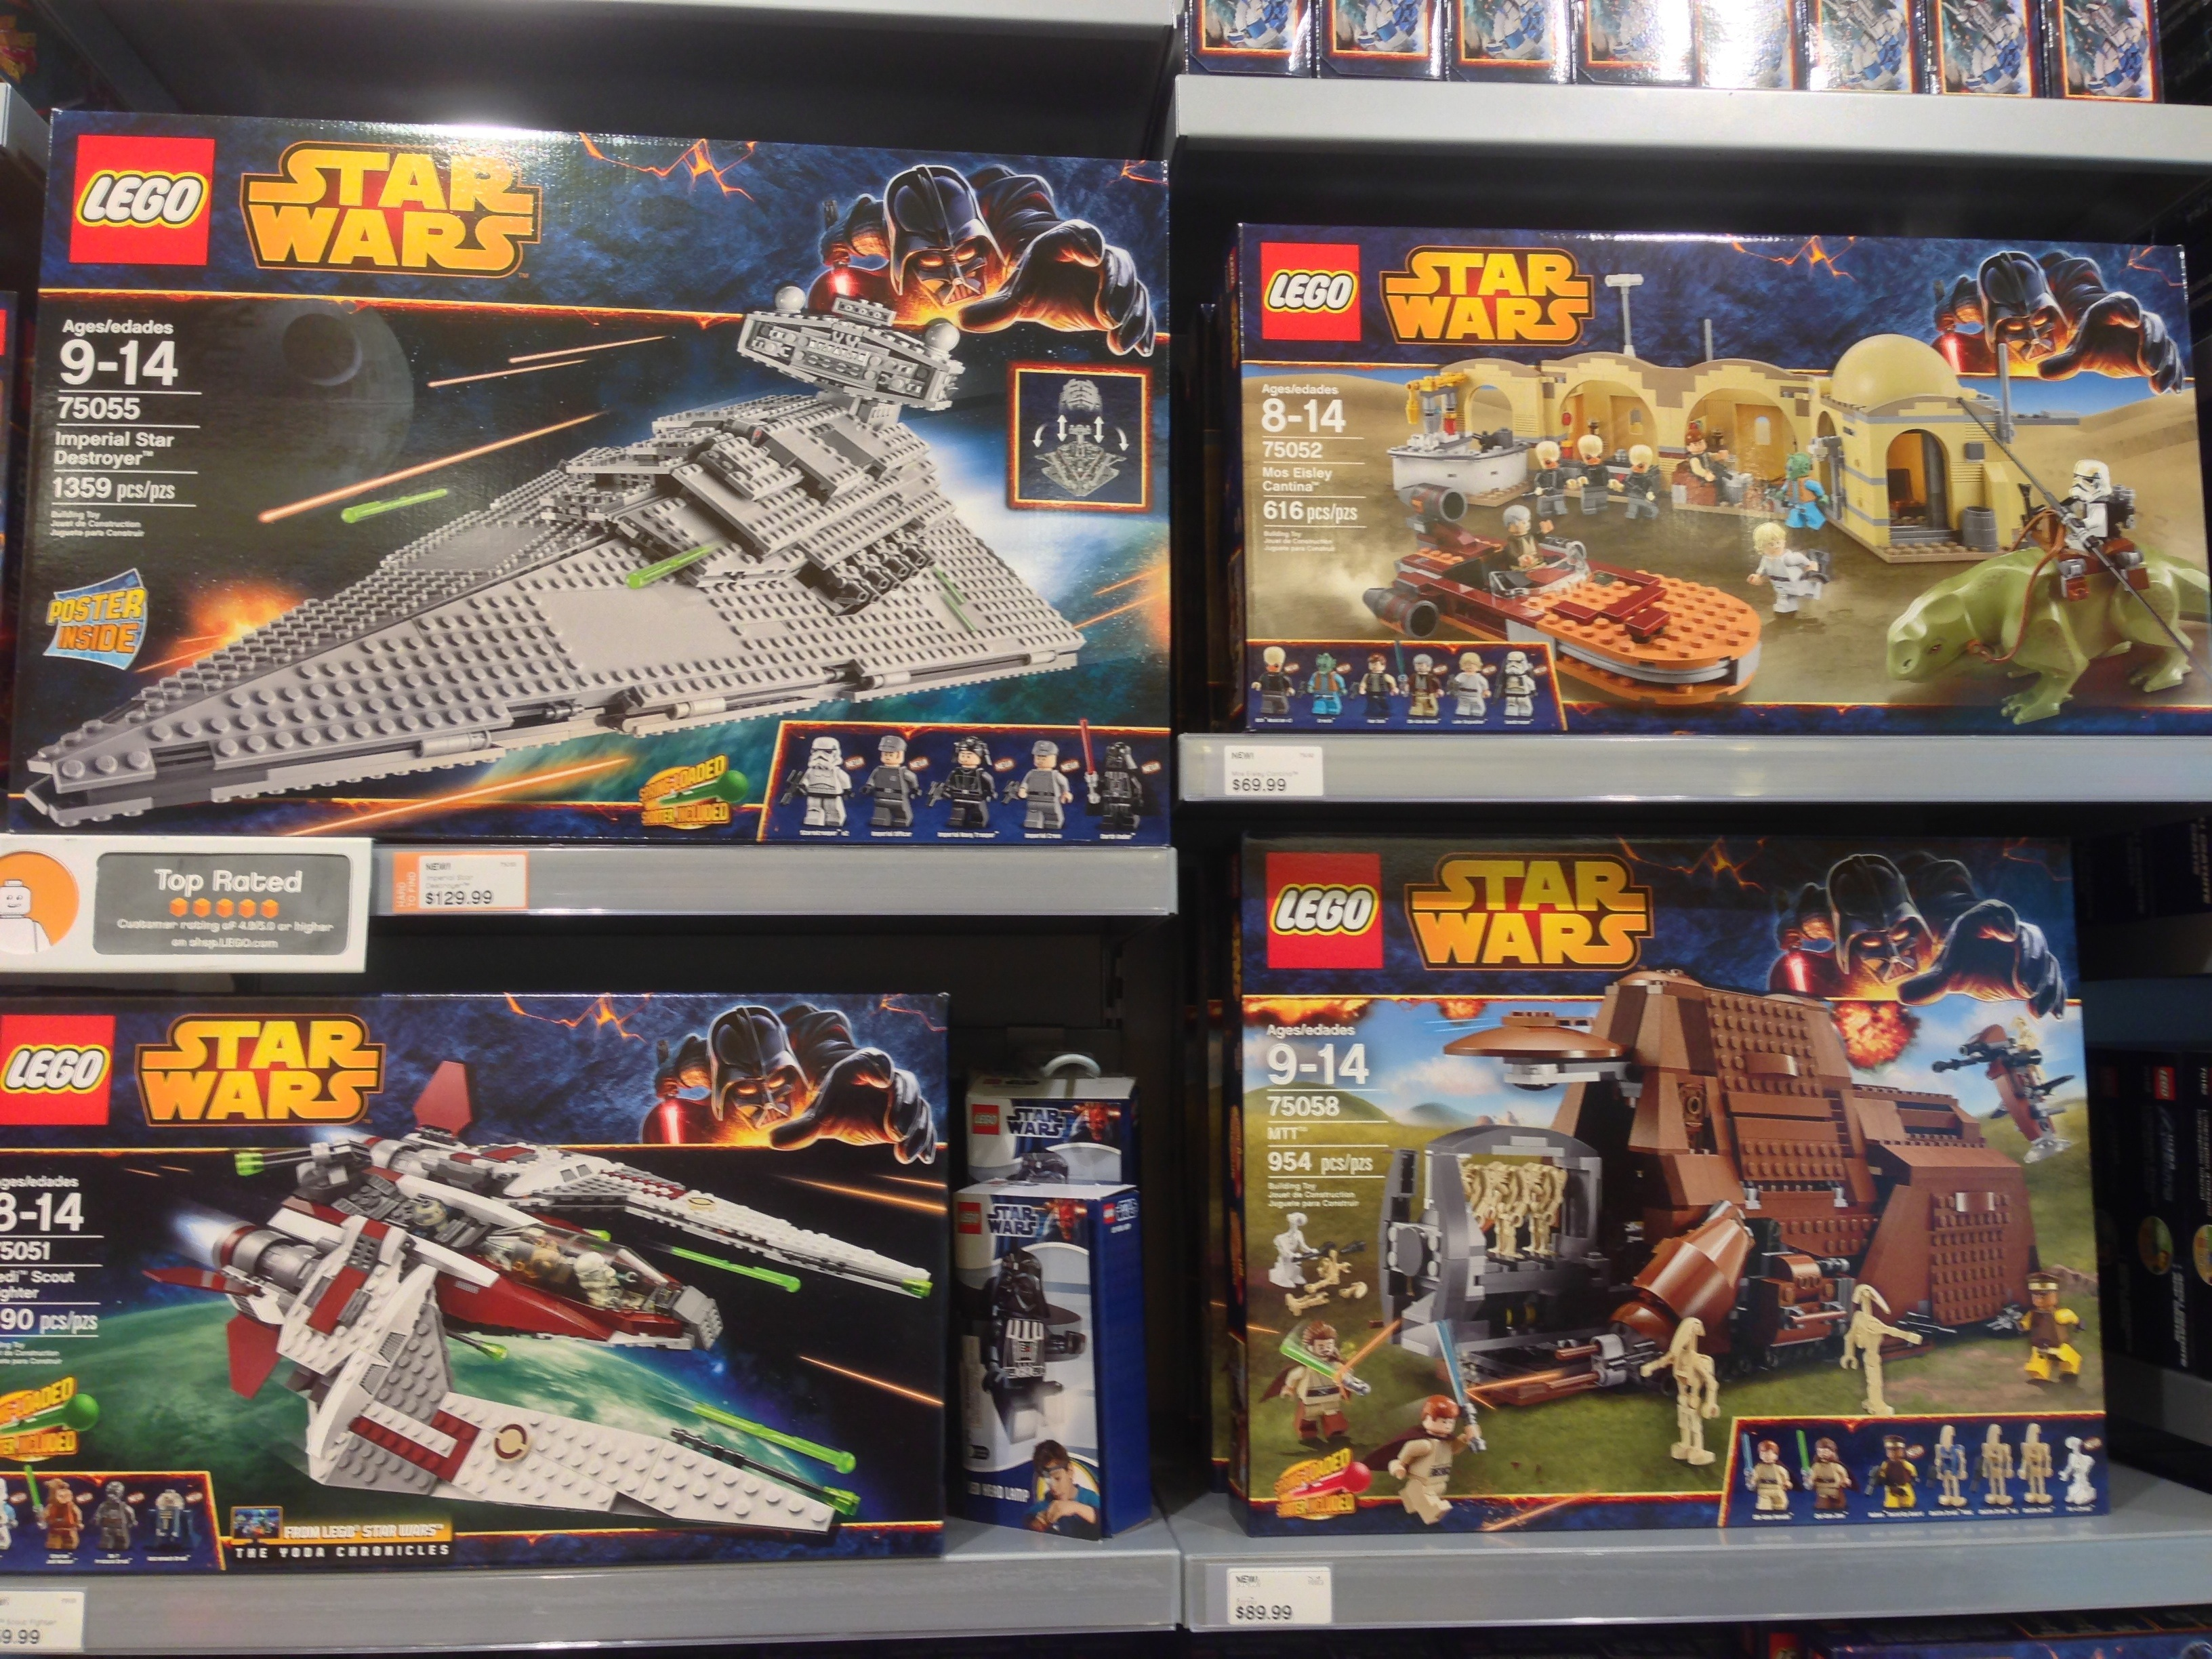 LEGO Star Wars MTT 75058 Summer 2014 Set Revealed! - Bricks